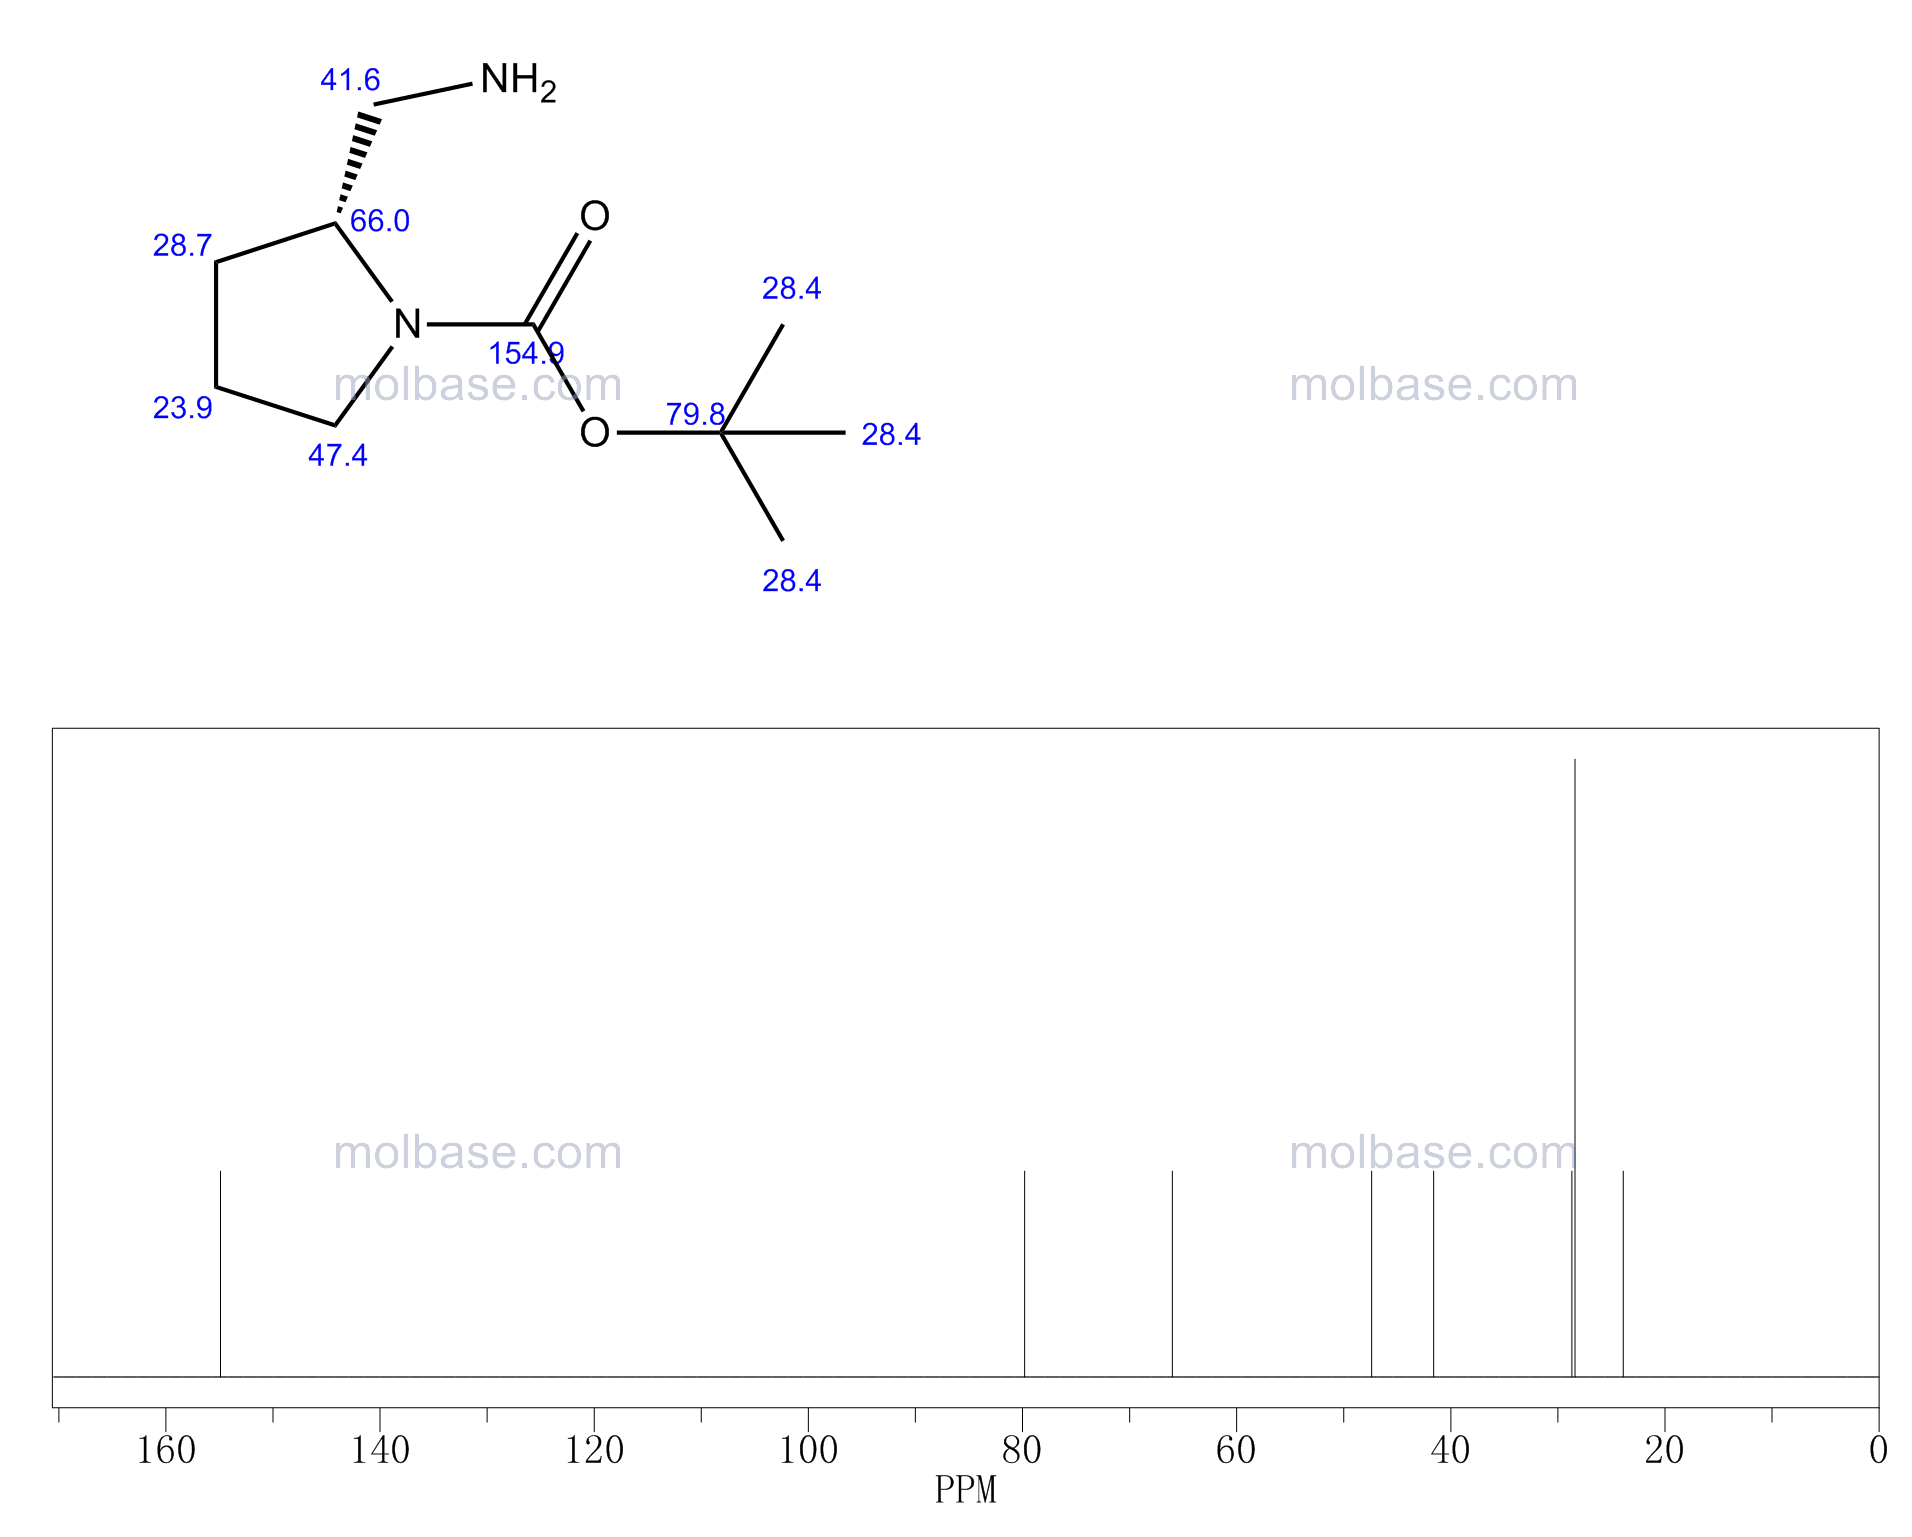 tert-butyl (2R)-2-(aminomethyl)pyrrolidine-1-carboxylate NMR spectra analysis, Chemical CAS NO. 259537-92-3 NMR spectral analysis, tert-butyl (2R)-2-(aminomethyl)pyrrolidine-1-carboxylate C-NMR spectrum